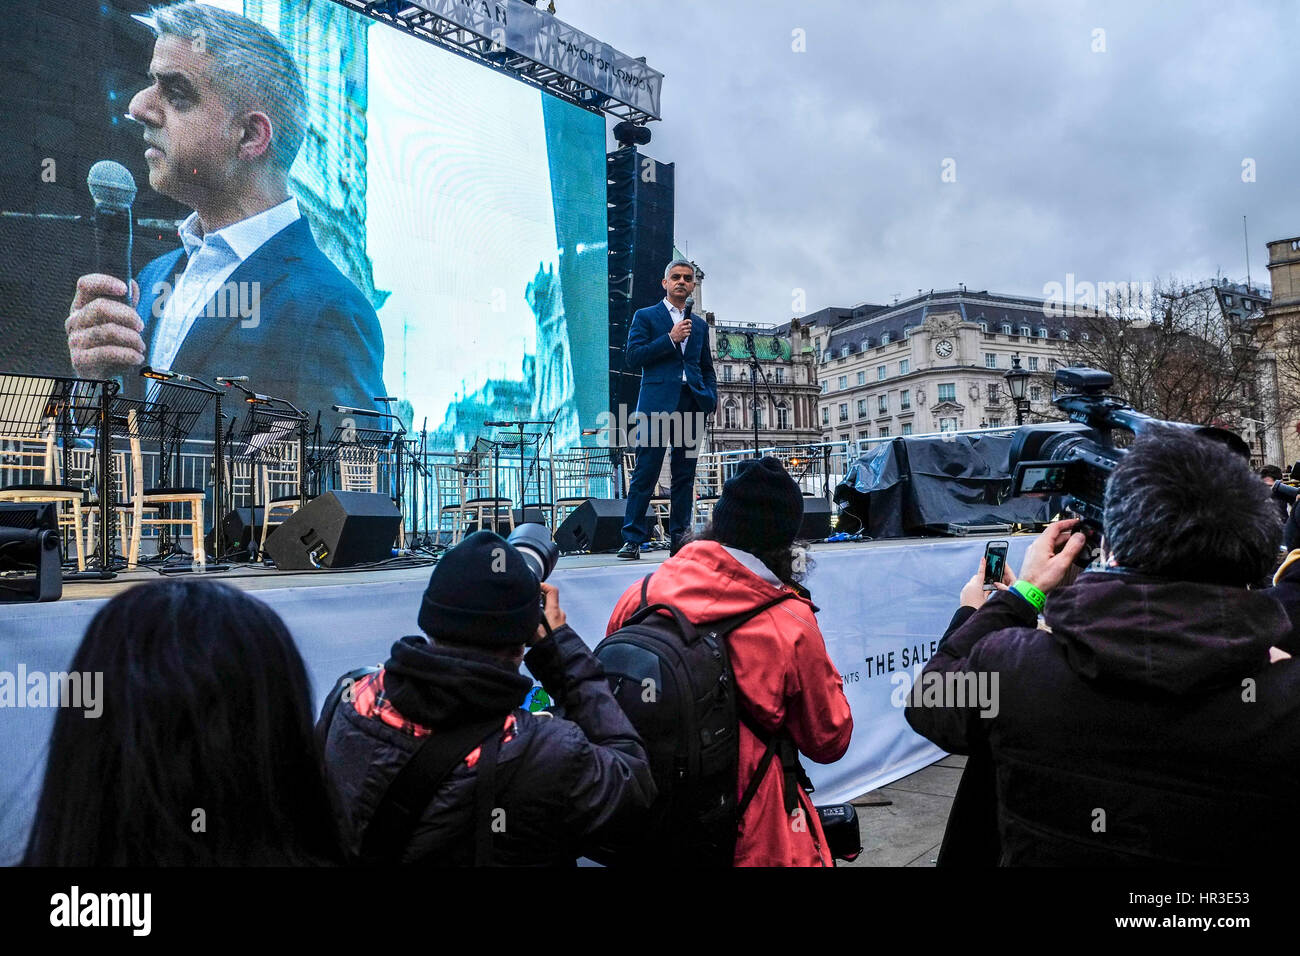 London, UK. 26th Feb, 2017. Mayor of London Sadiq Khan whose office is hosting the event addresses the crowd at - Stock Image